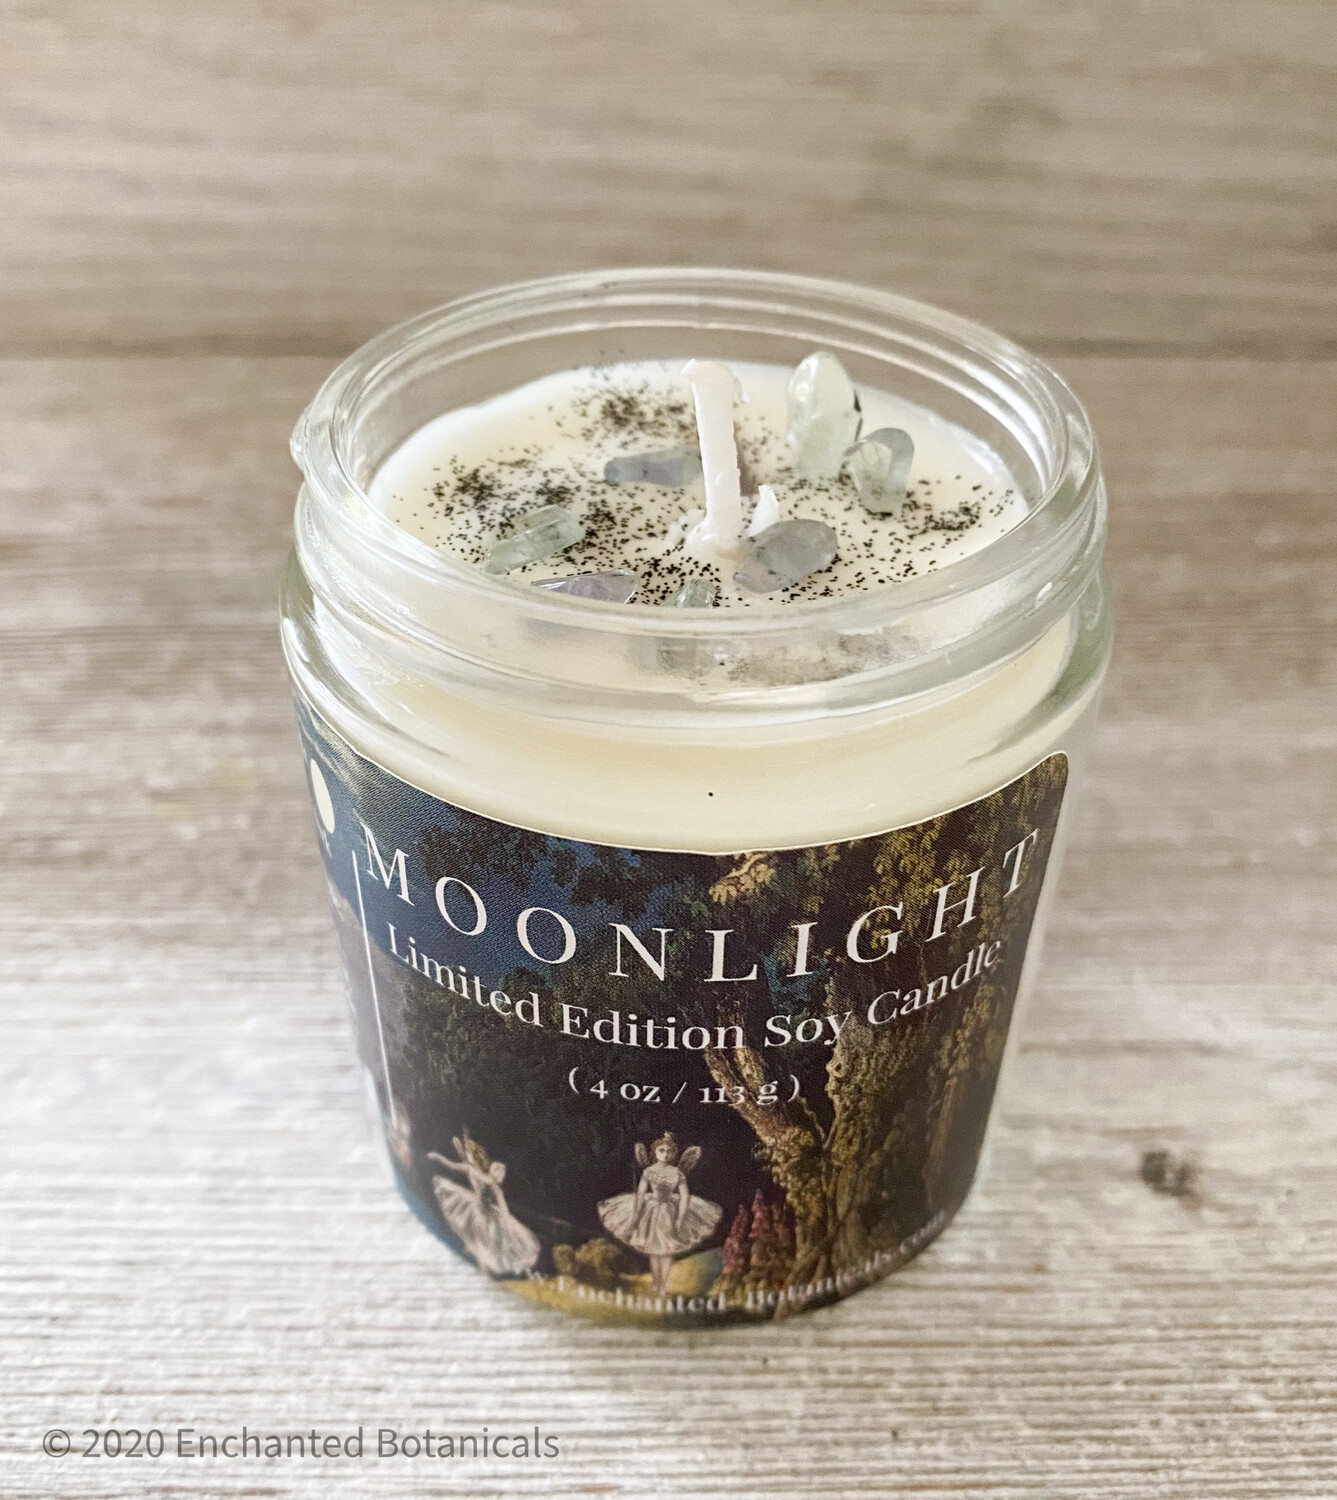 MOONLIGHT Limited Edition Soy Candle